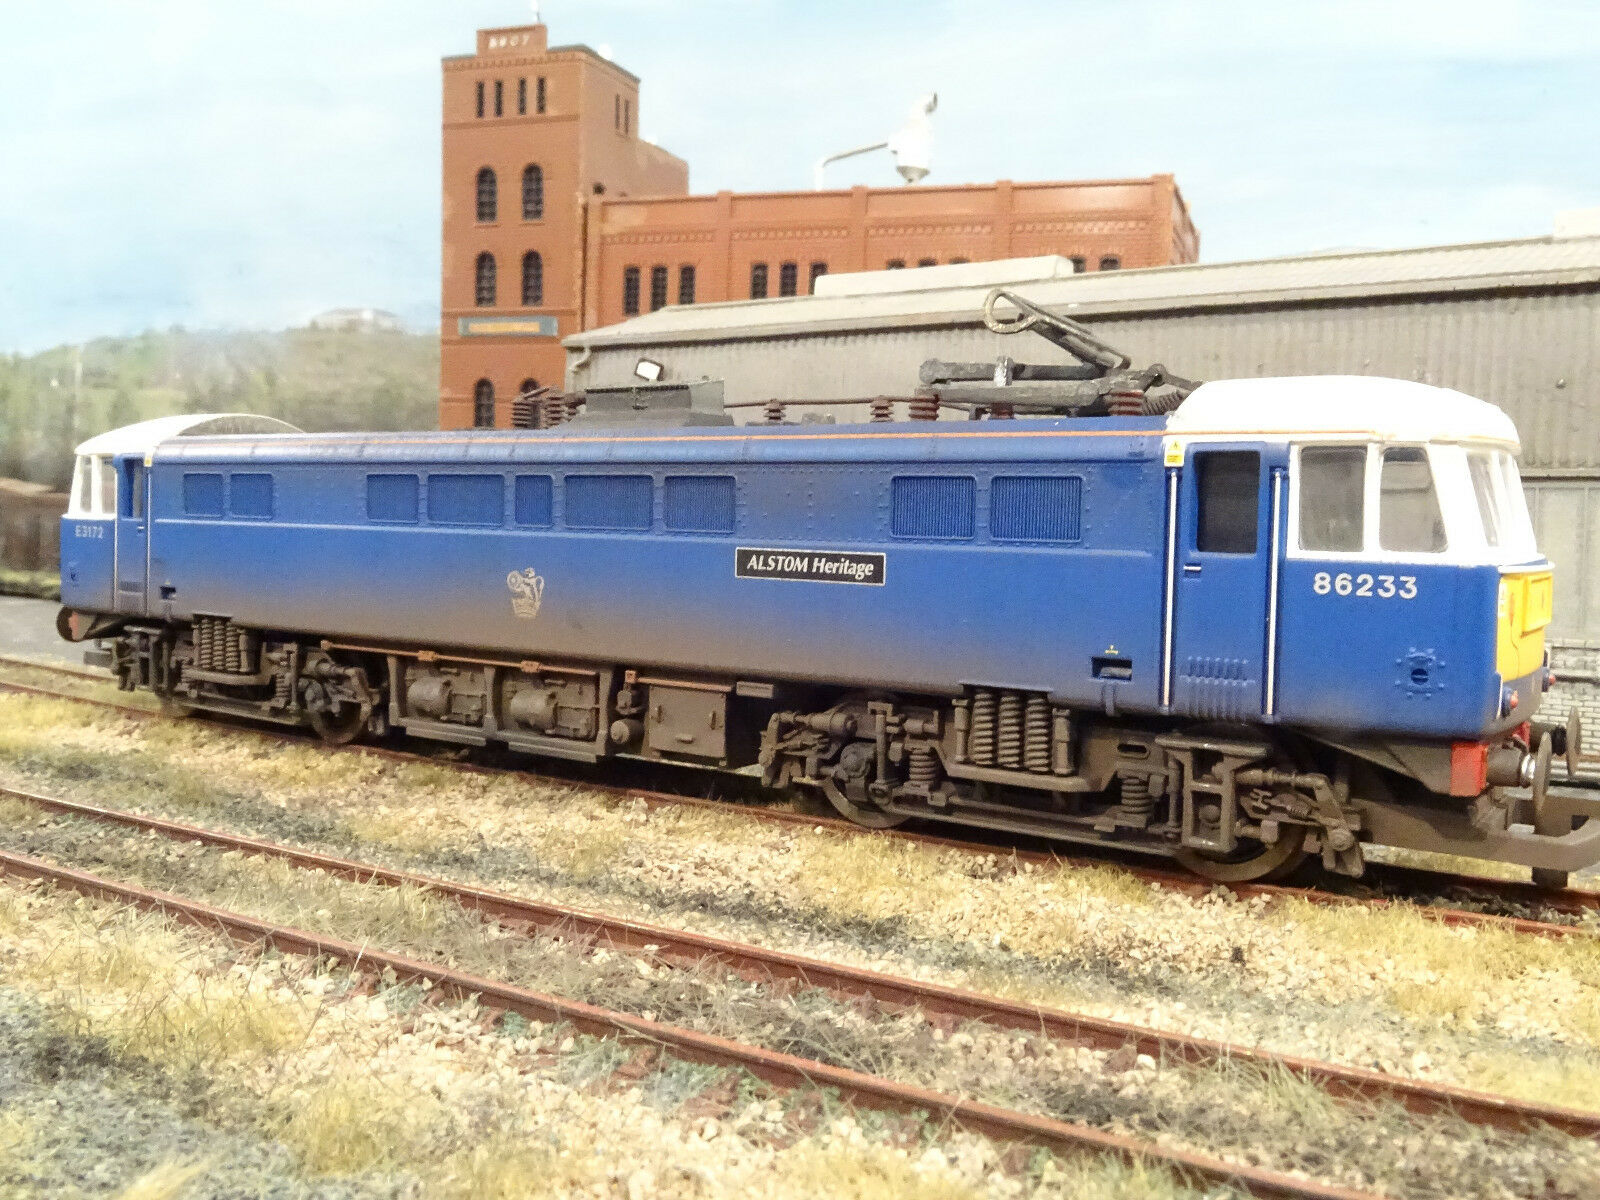 HORNBY CLASS 86233 ALSTROM HERITAGE (LINESIDE WEATHERED) R2414